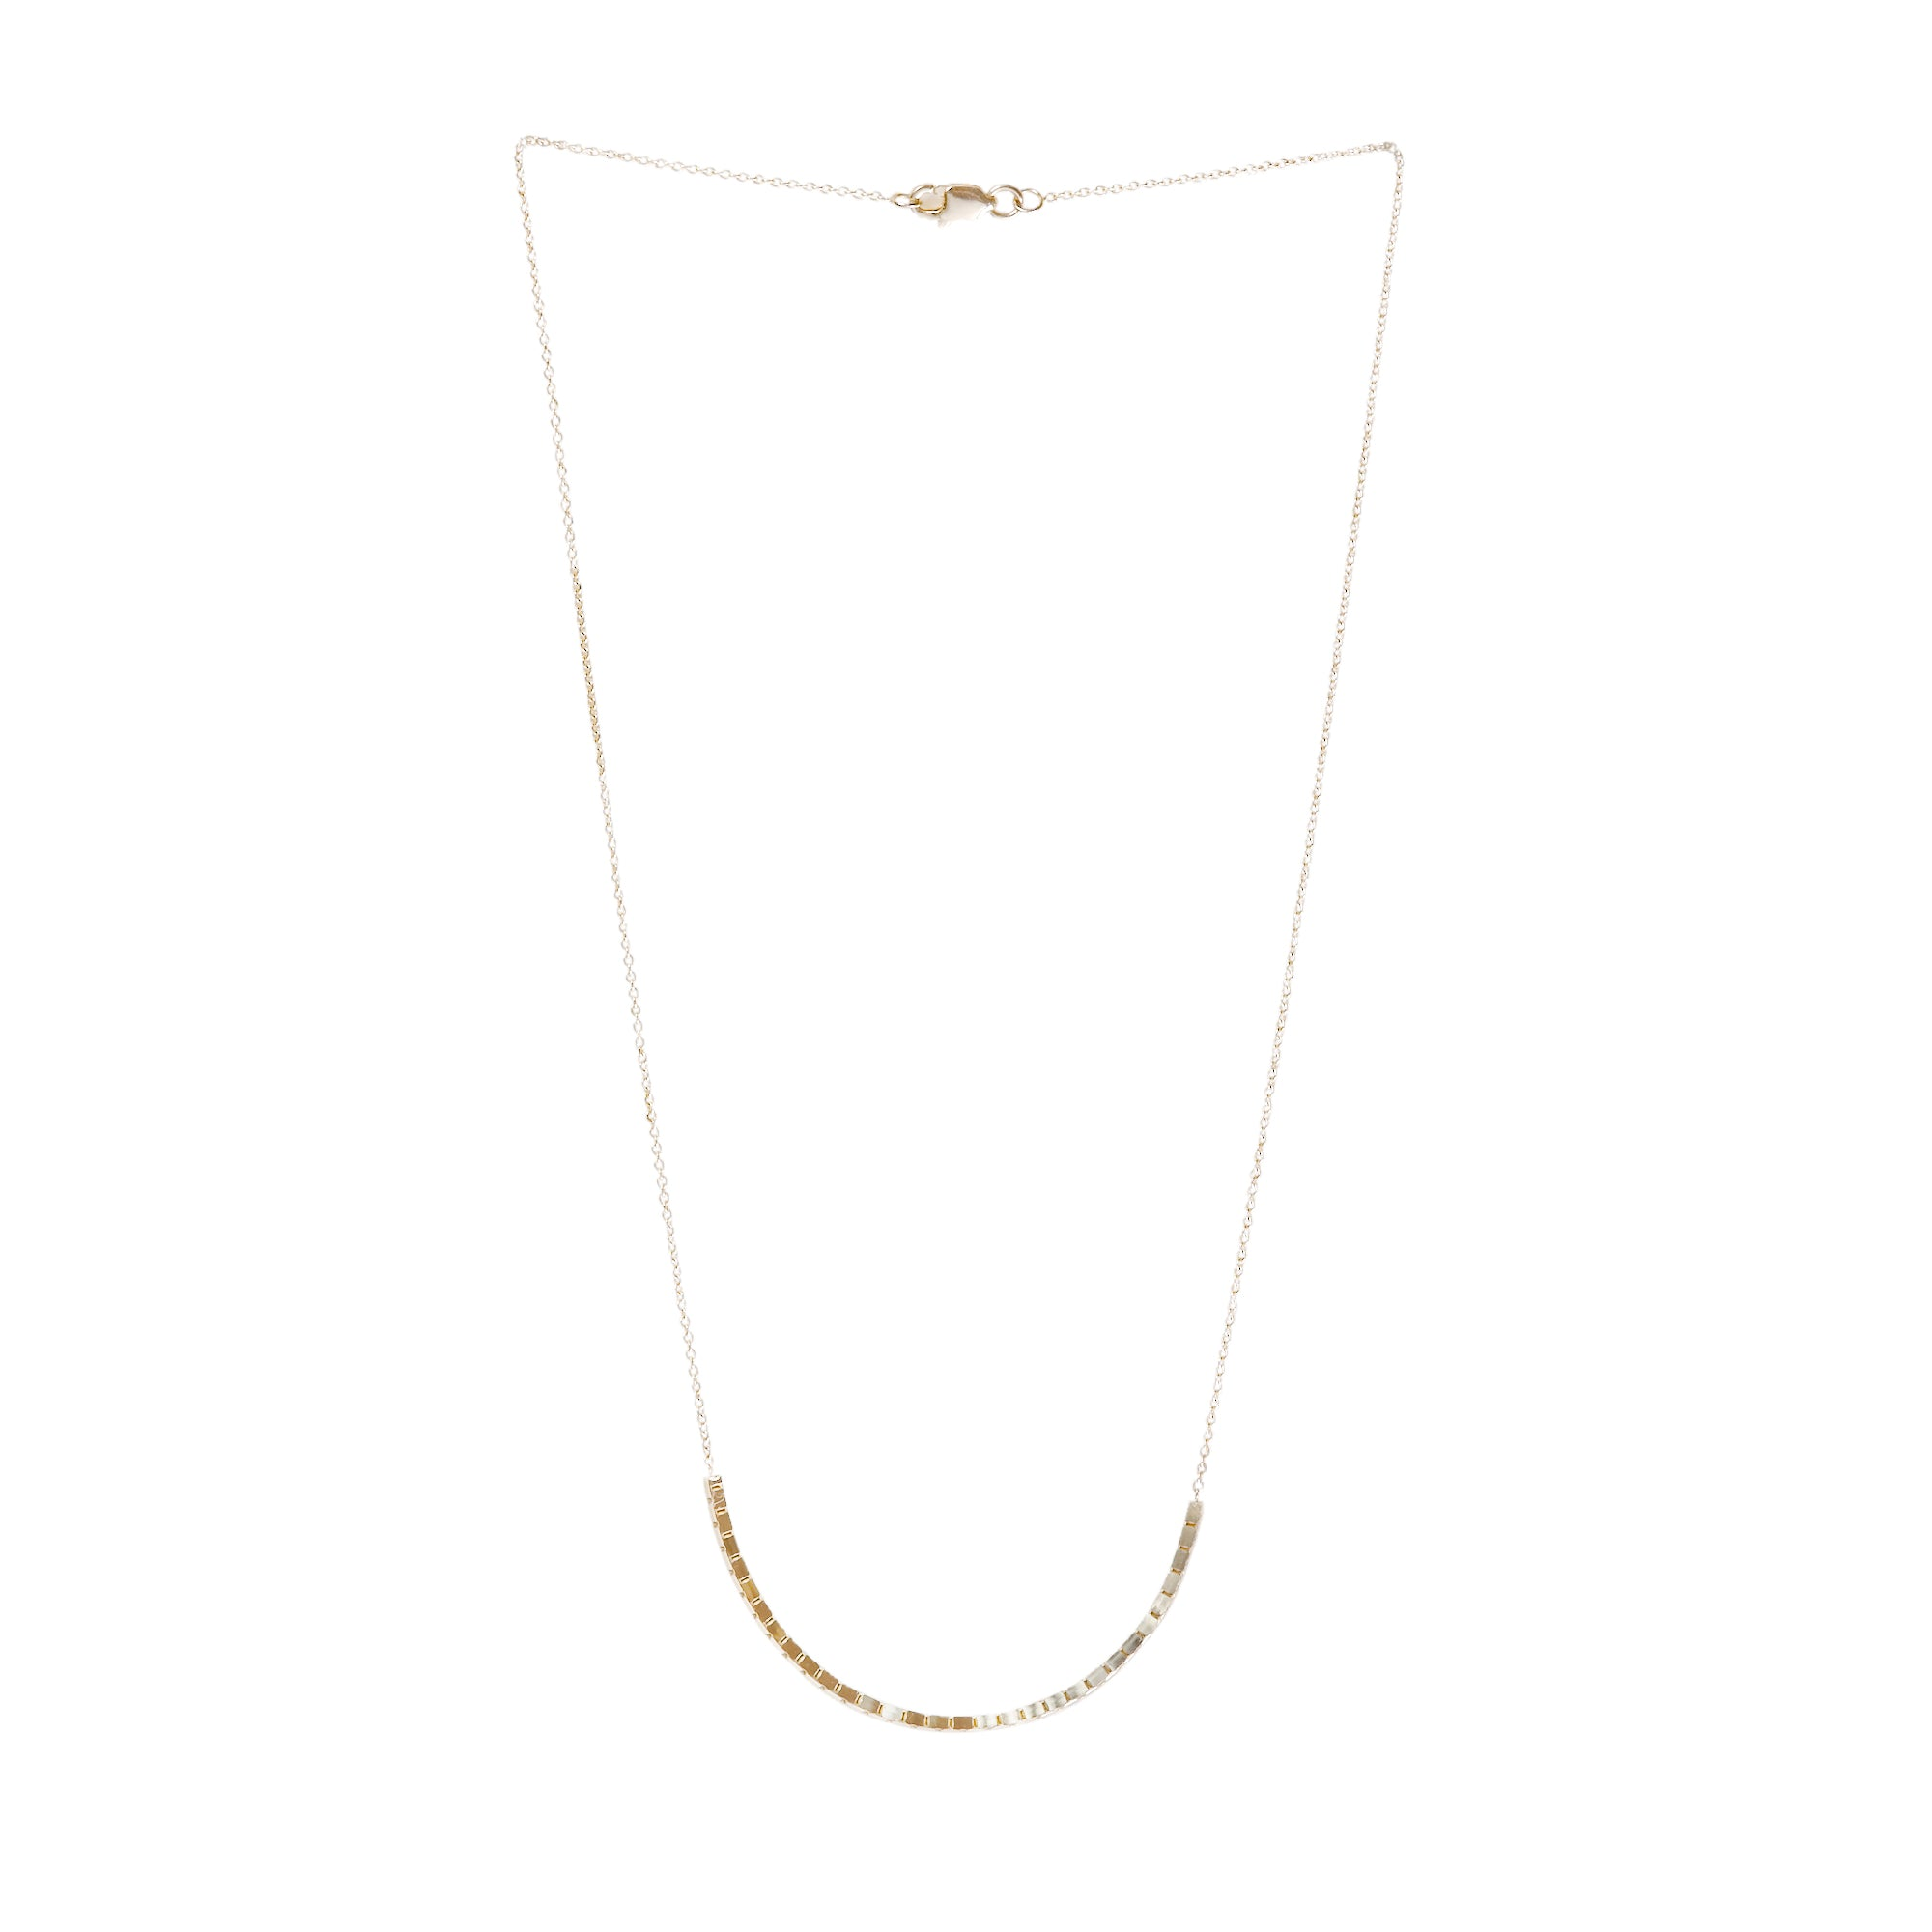 Halo Necklace 18K Yellow Gold